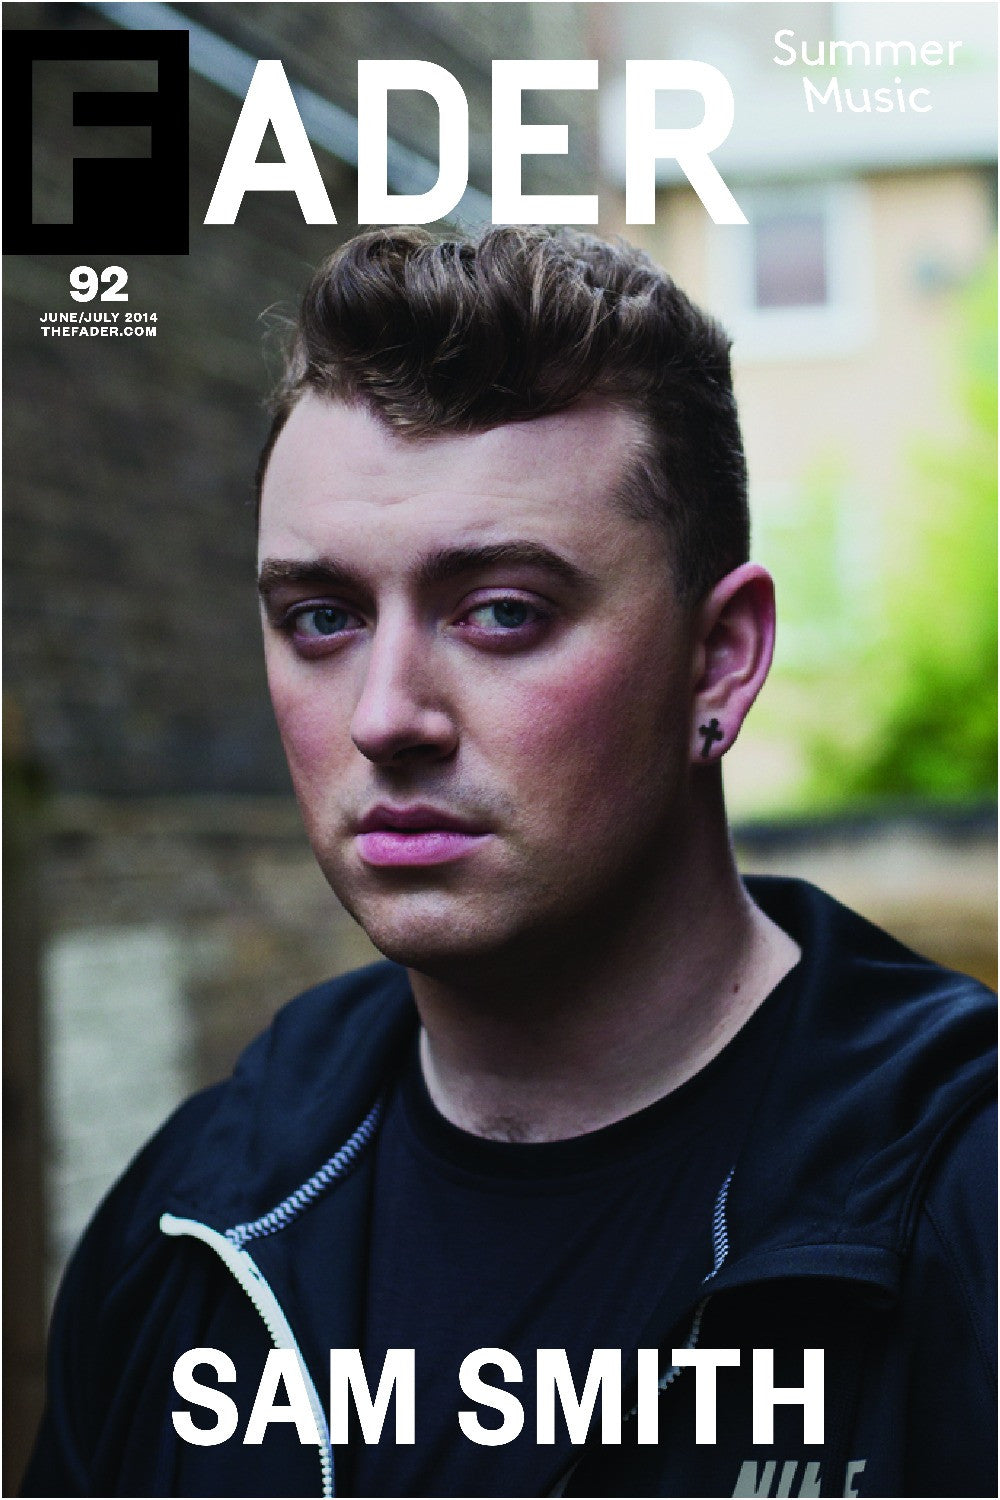 "Sam Smith / The FADER Issue 92 Cover 20"" x 30"" Poster - The FADER"